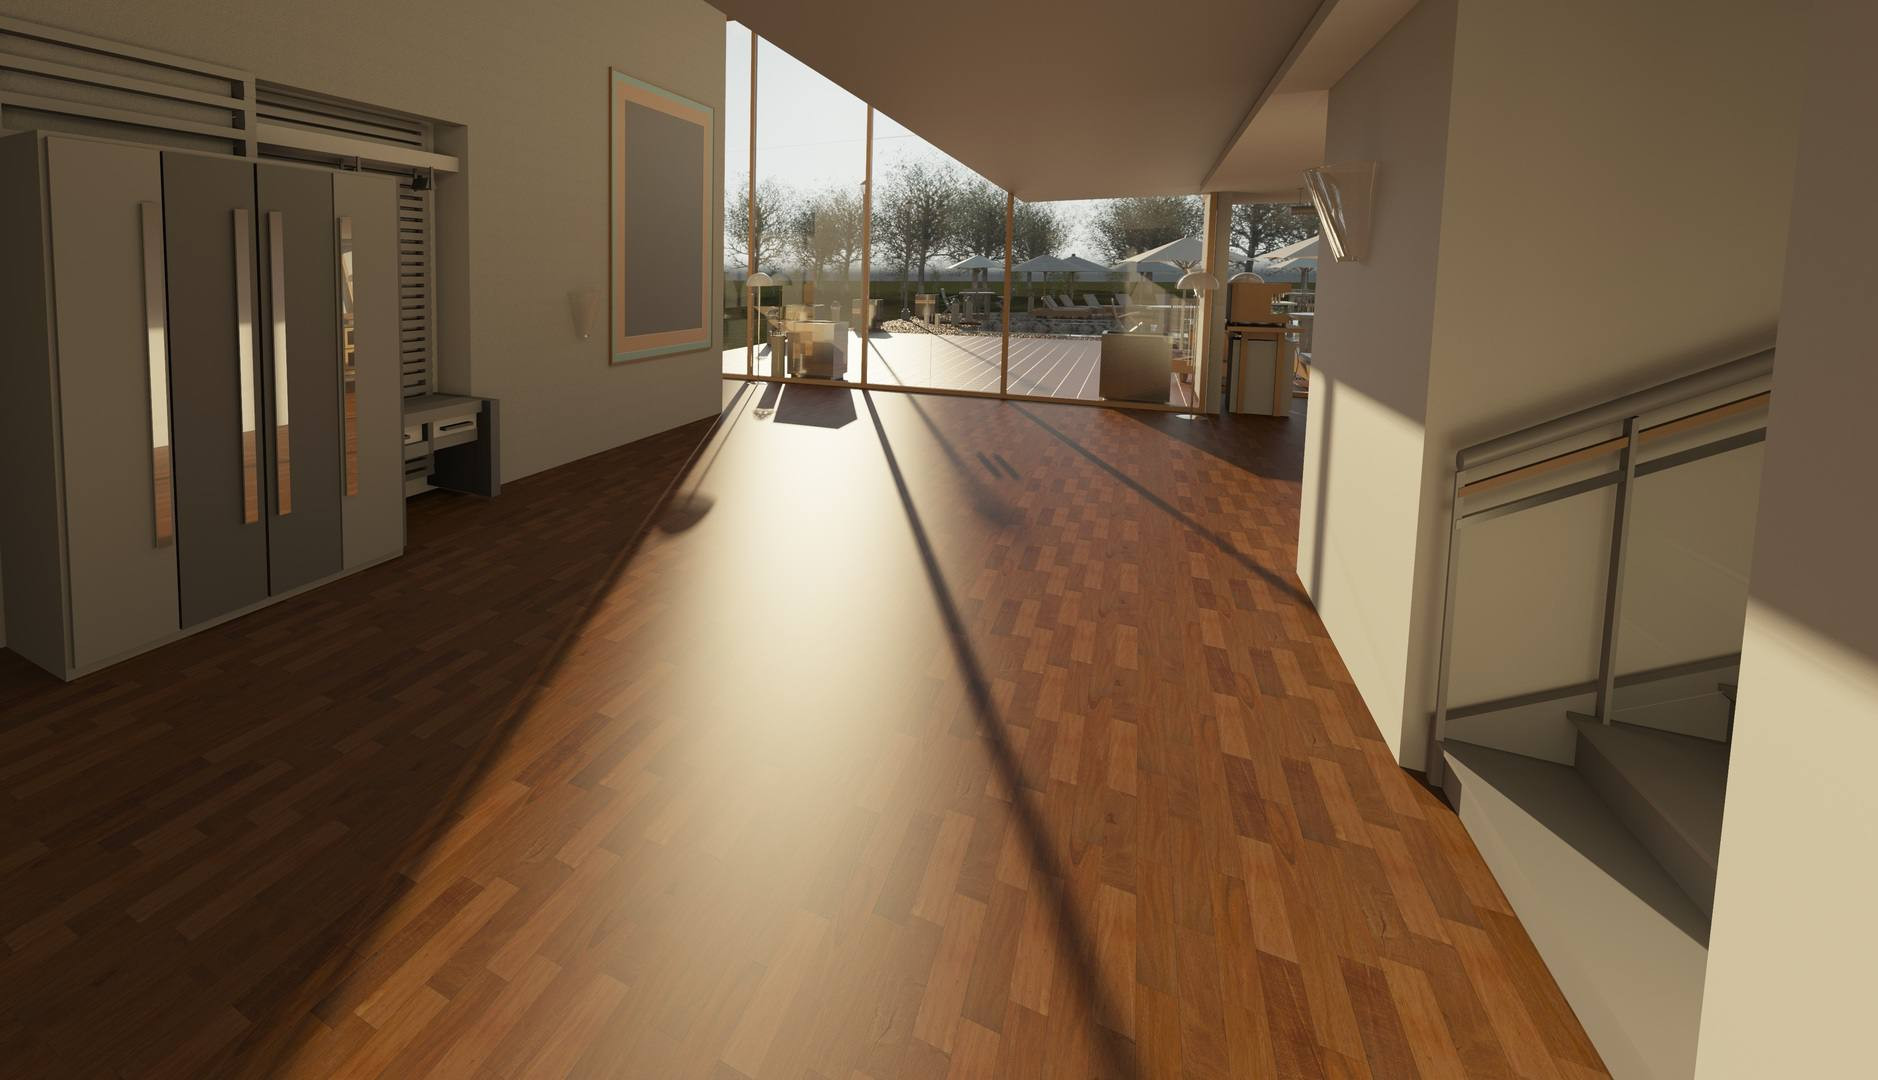 can you install solid hardwood floors on concrete of common flooring types currently used in renovation and building regarding architecture wood house floor interior window 917178 pxhere com 5ba27a2cc9e77c00503b27b9